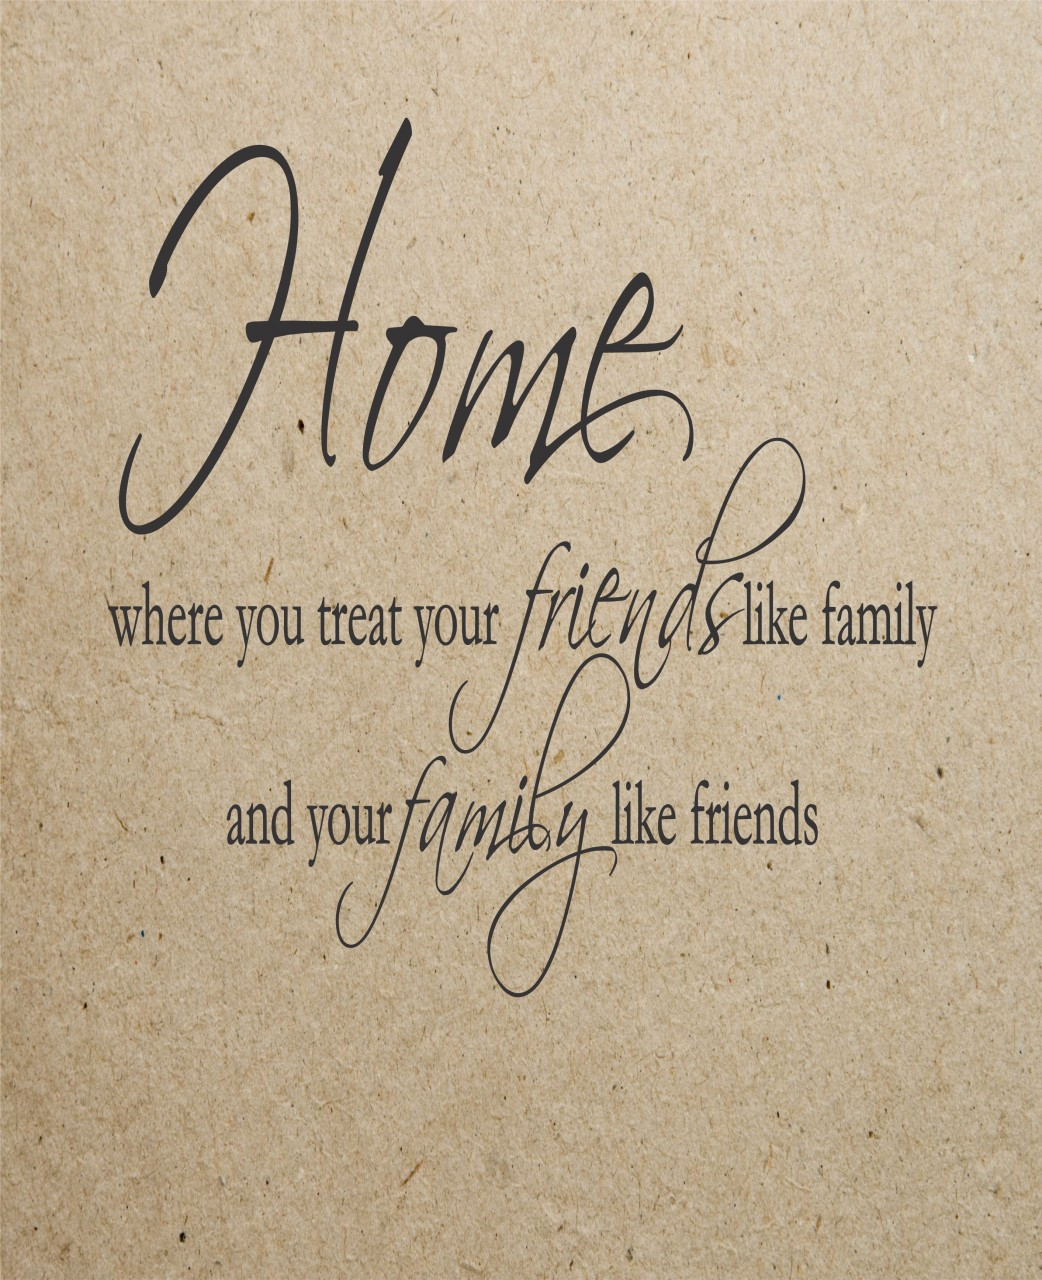 Wall Decals and Stickers - Home where you treat your friends like family  and your family like friends